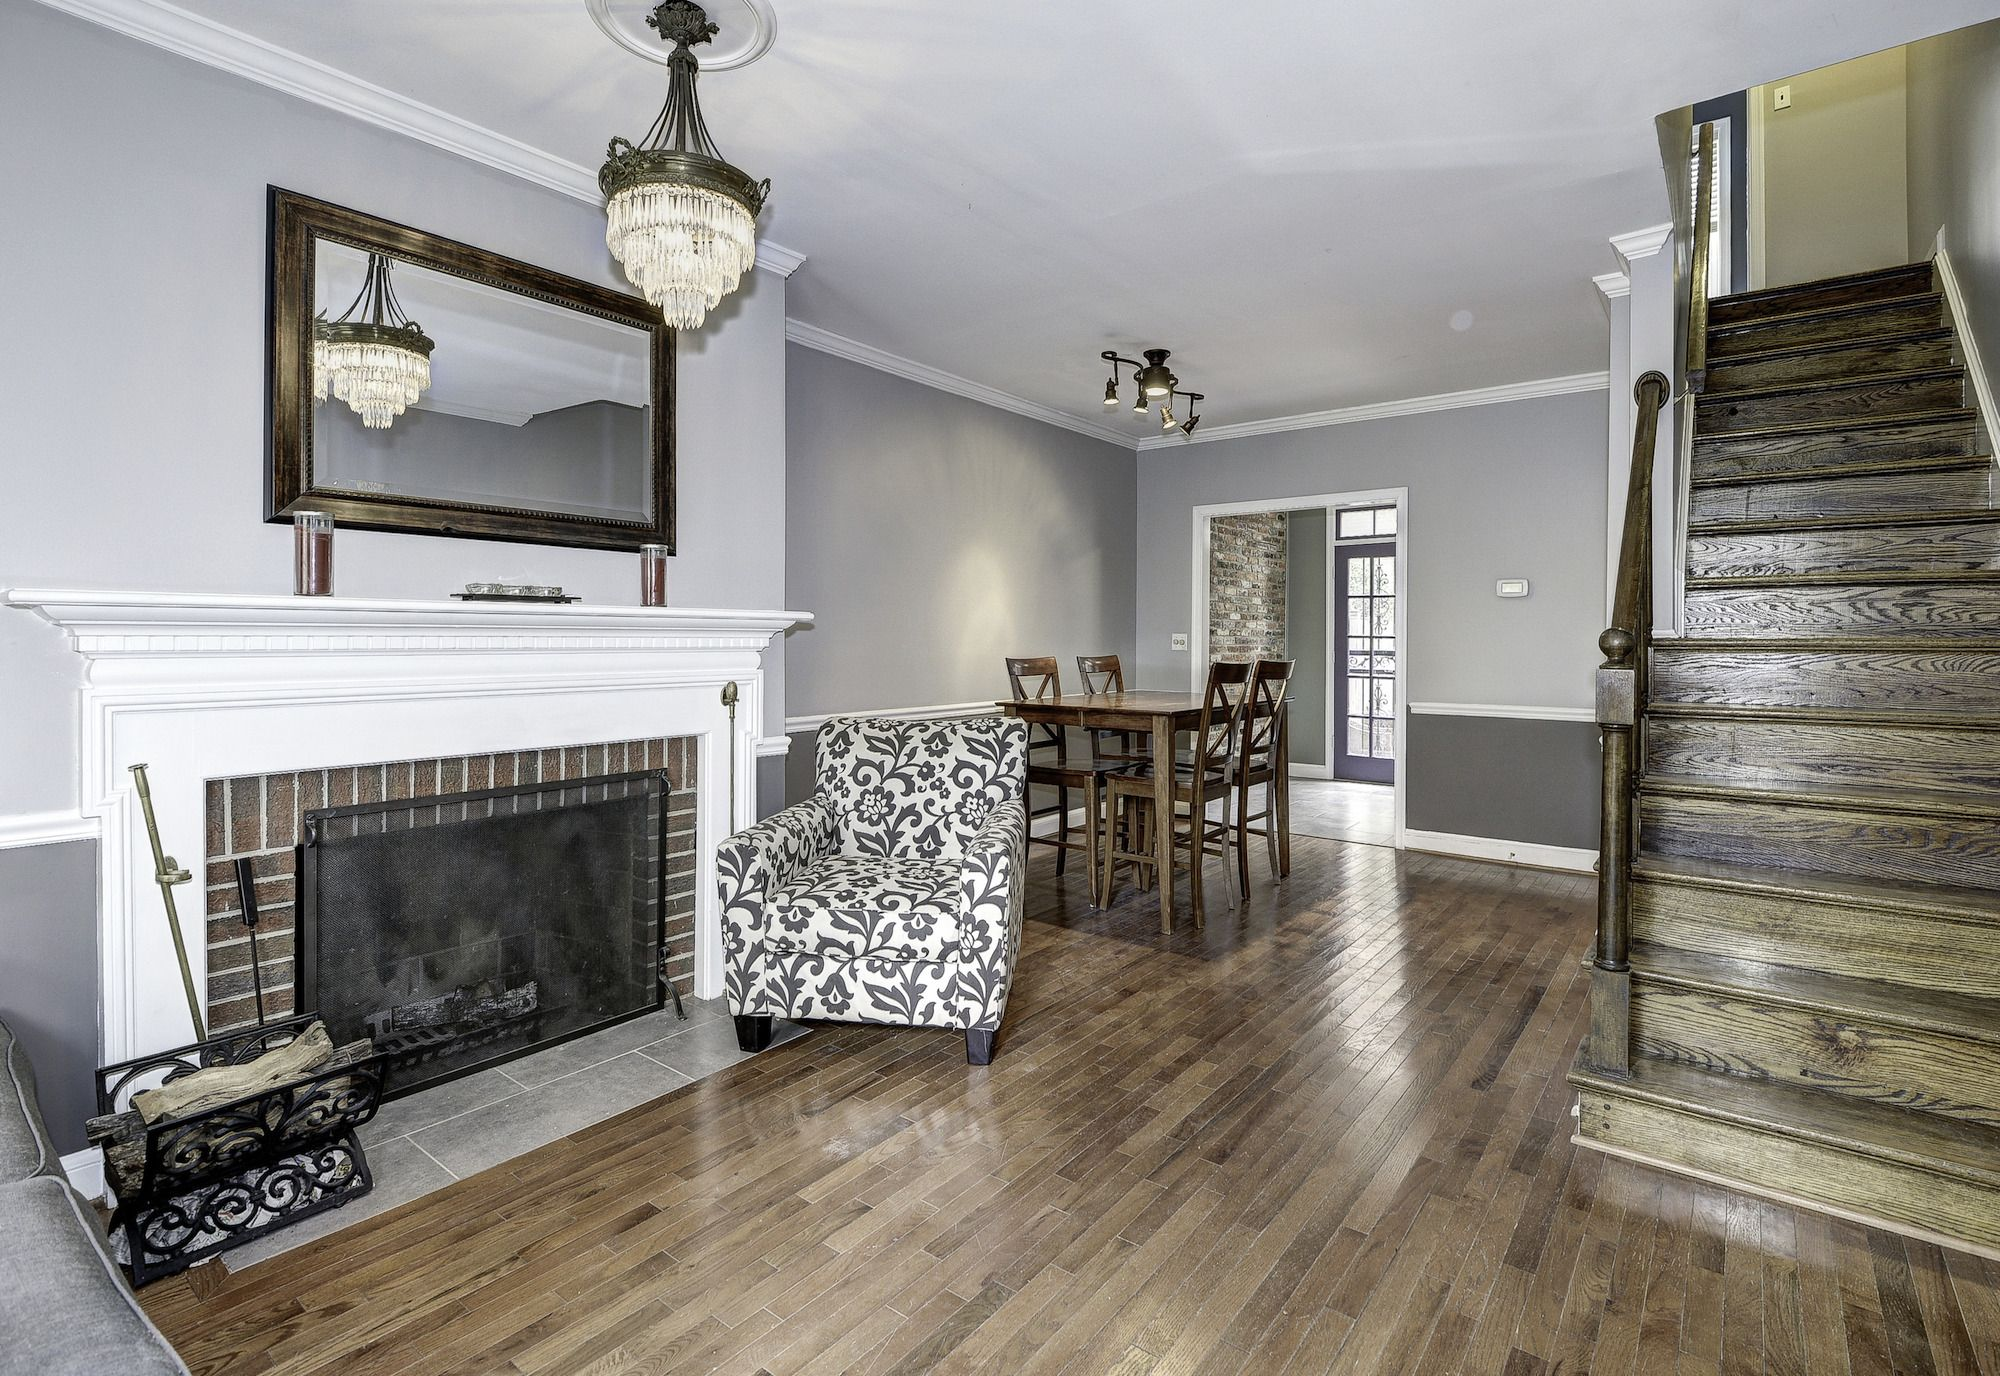 SOLD! - $774,900 - 217 FAYETTE ST S, ALEXANDRIA, VA 22314 This phenomenal 4-level 3br + loft w 2.5ba TH has gorgeous hrwd flrs throughout* newly installed half bath on main level* 2 wood fps* gorgeous remodeled kitchen w granite + ss apps* updated ba w travertine tile* dual head shower* loft off 3rd br w gorgeous built-ins* brick patio w shed* front loading w/d* 1 assigned parking spot and NO HOA fee! ideally located 6 blocks from metro. Don't miss out!